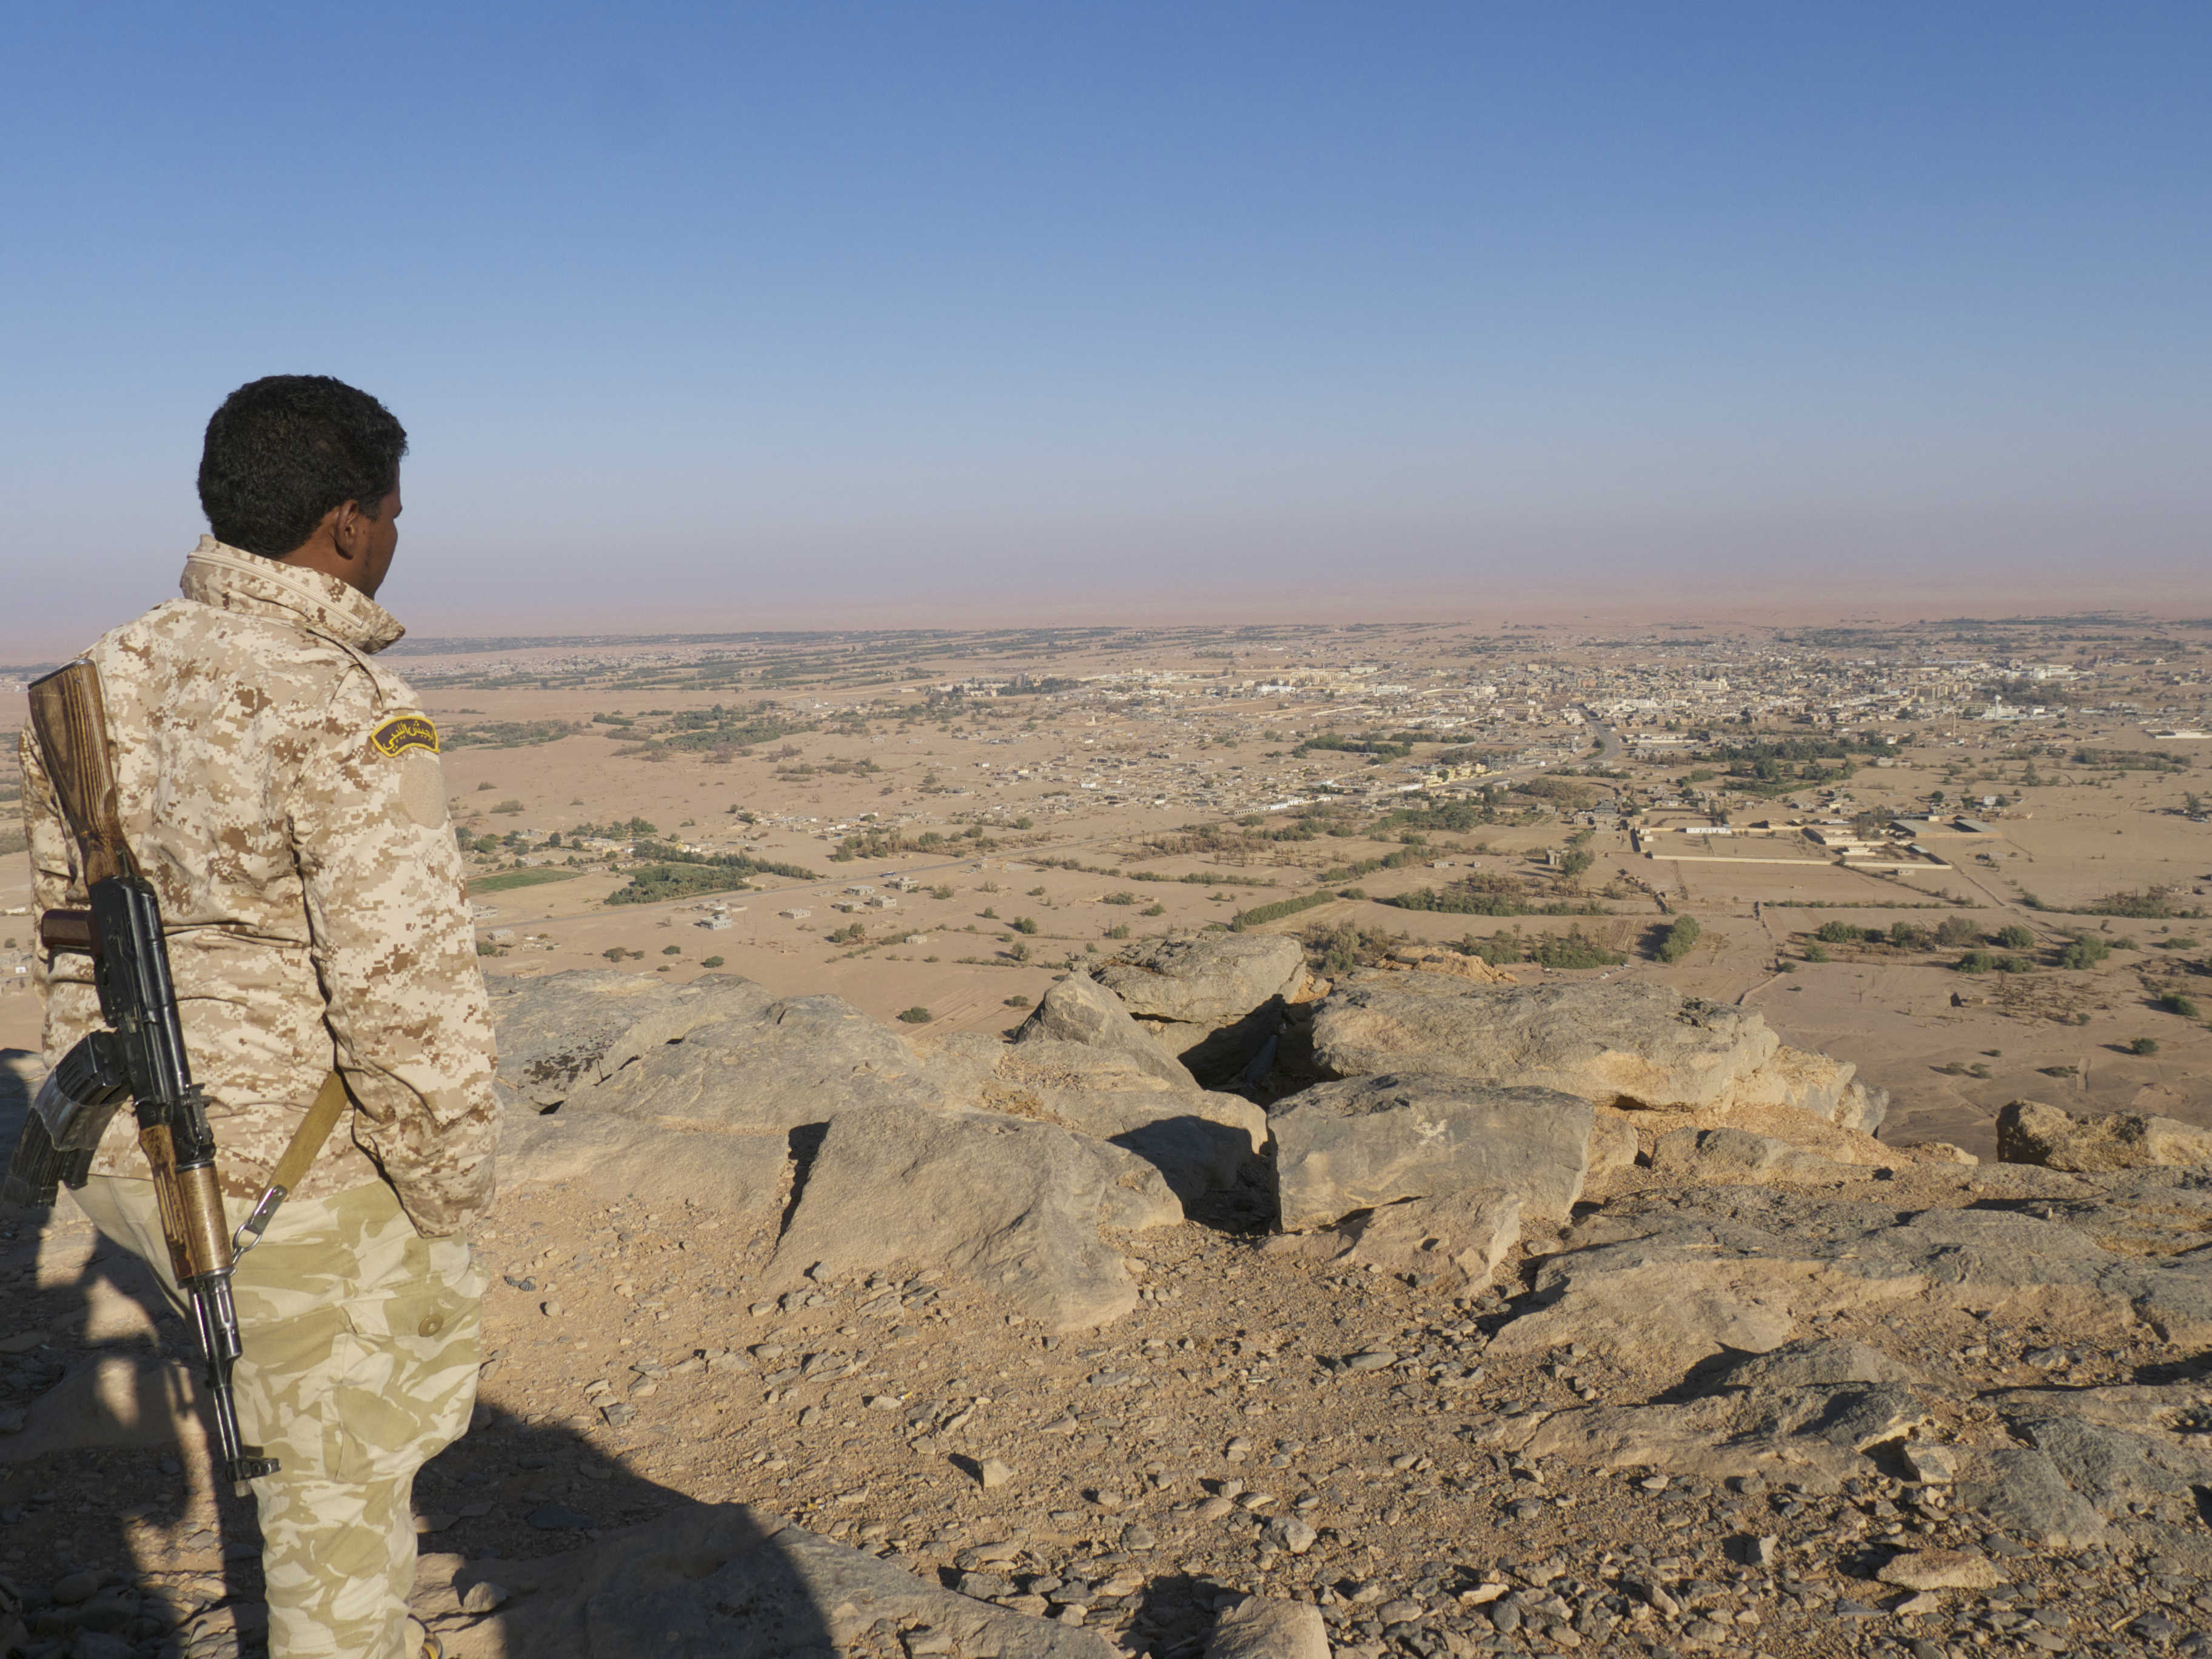 A Tuareg fighter overlooking Ubari from a mountain in 2015 (MEE/Tom Wescott)